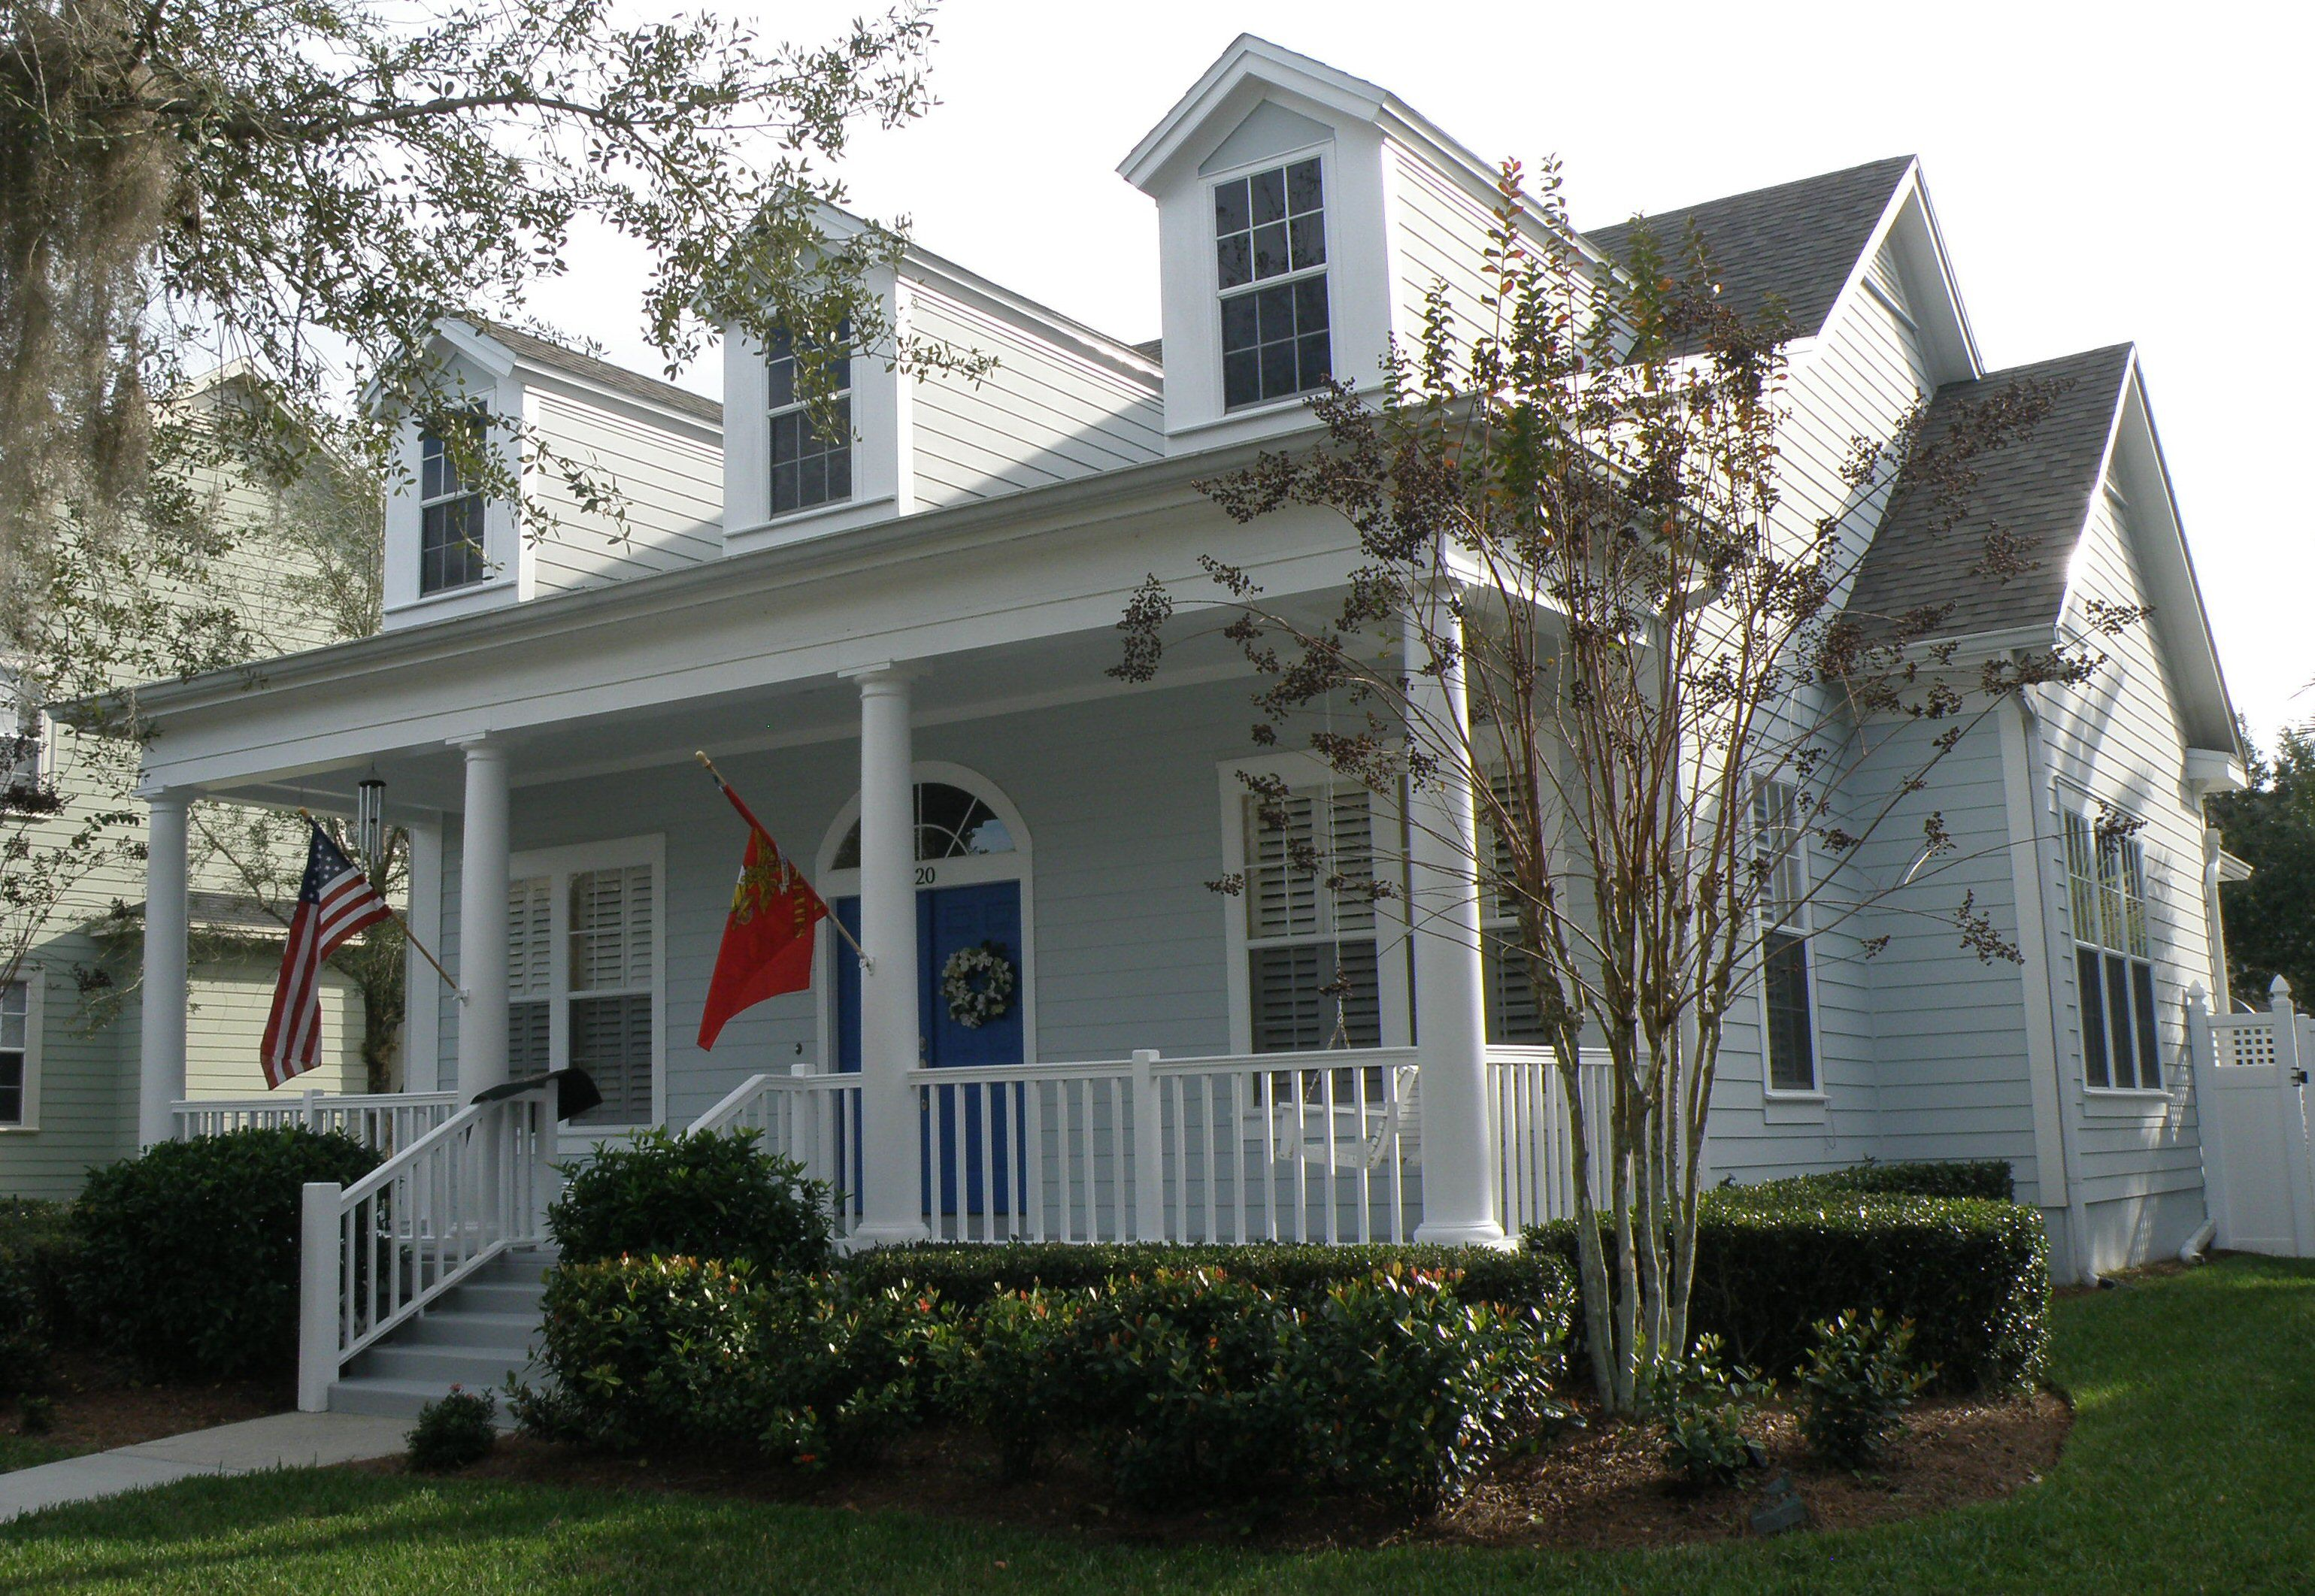 Three dormers and front porch on neighborhood house